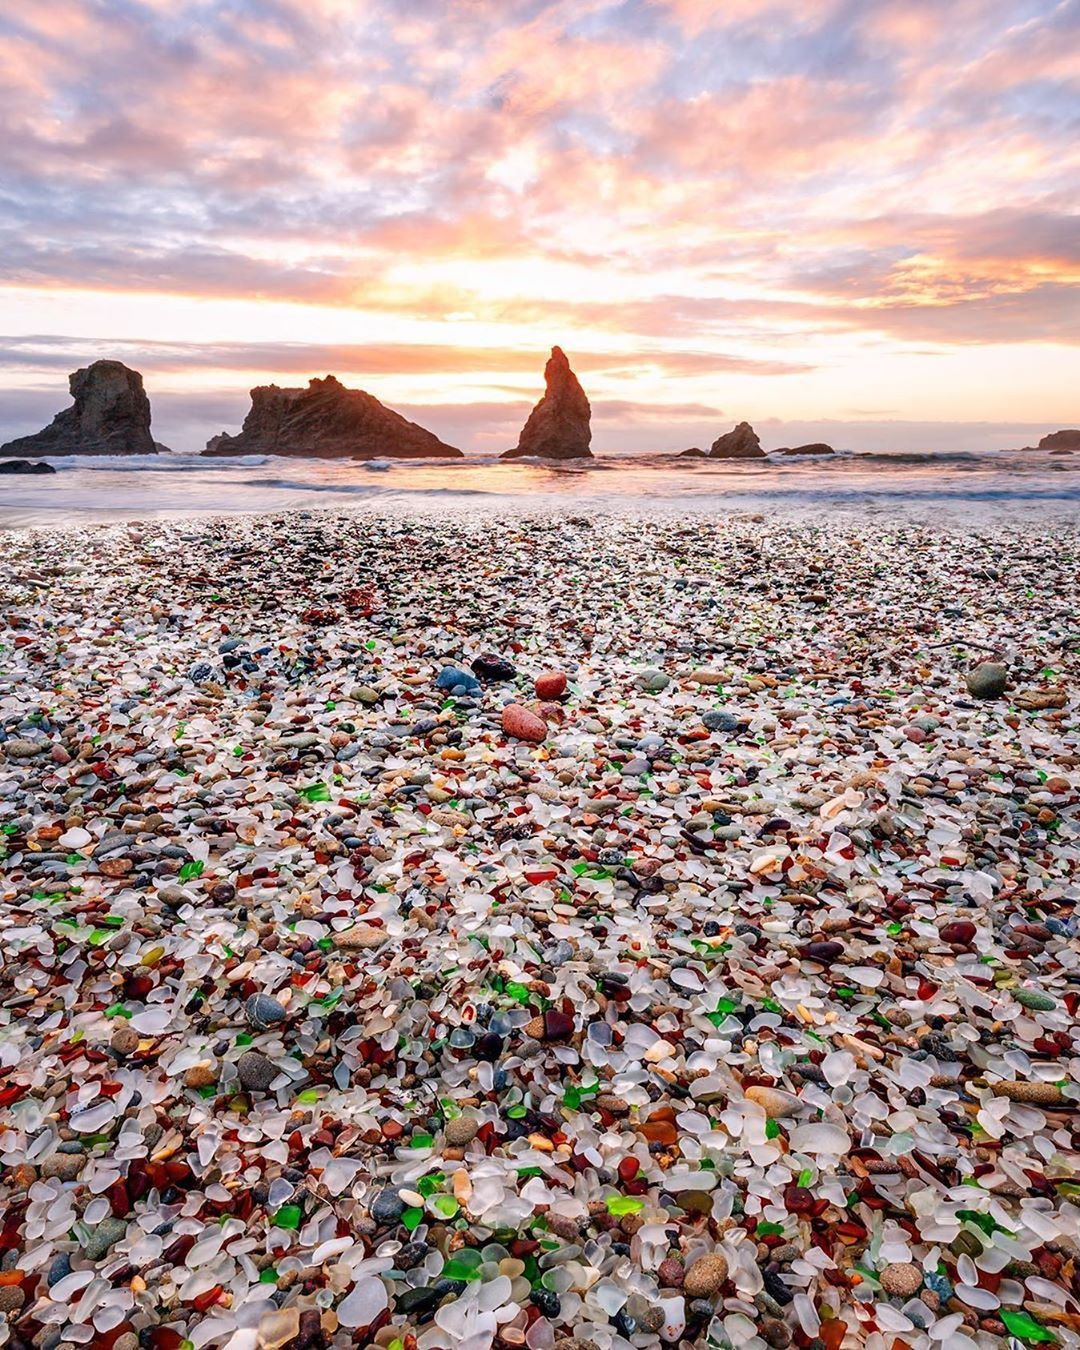 Cnn Travel On Instagram This Might Be The Most Beautiful Garbage Dump In The World Glass Beach California Beautiful Places In California Places In California